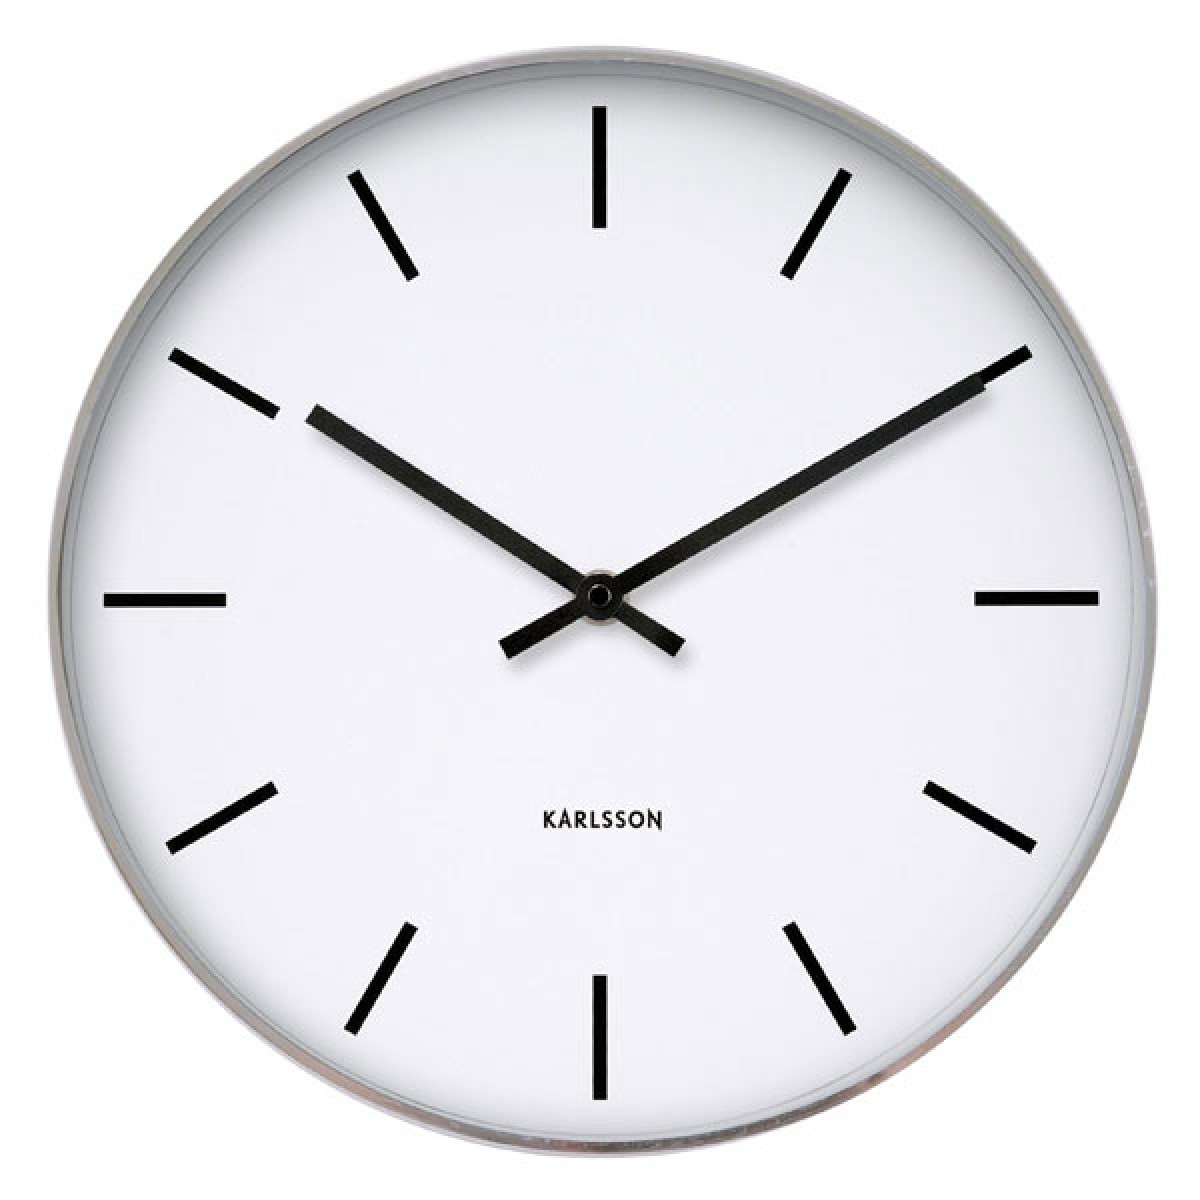 Newgate putney clock gloss red retro wall clock karlsson station classic wall amipublicfo Gallery